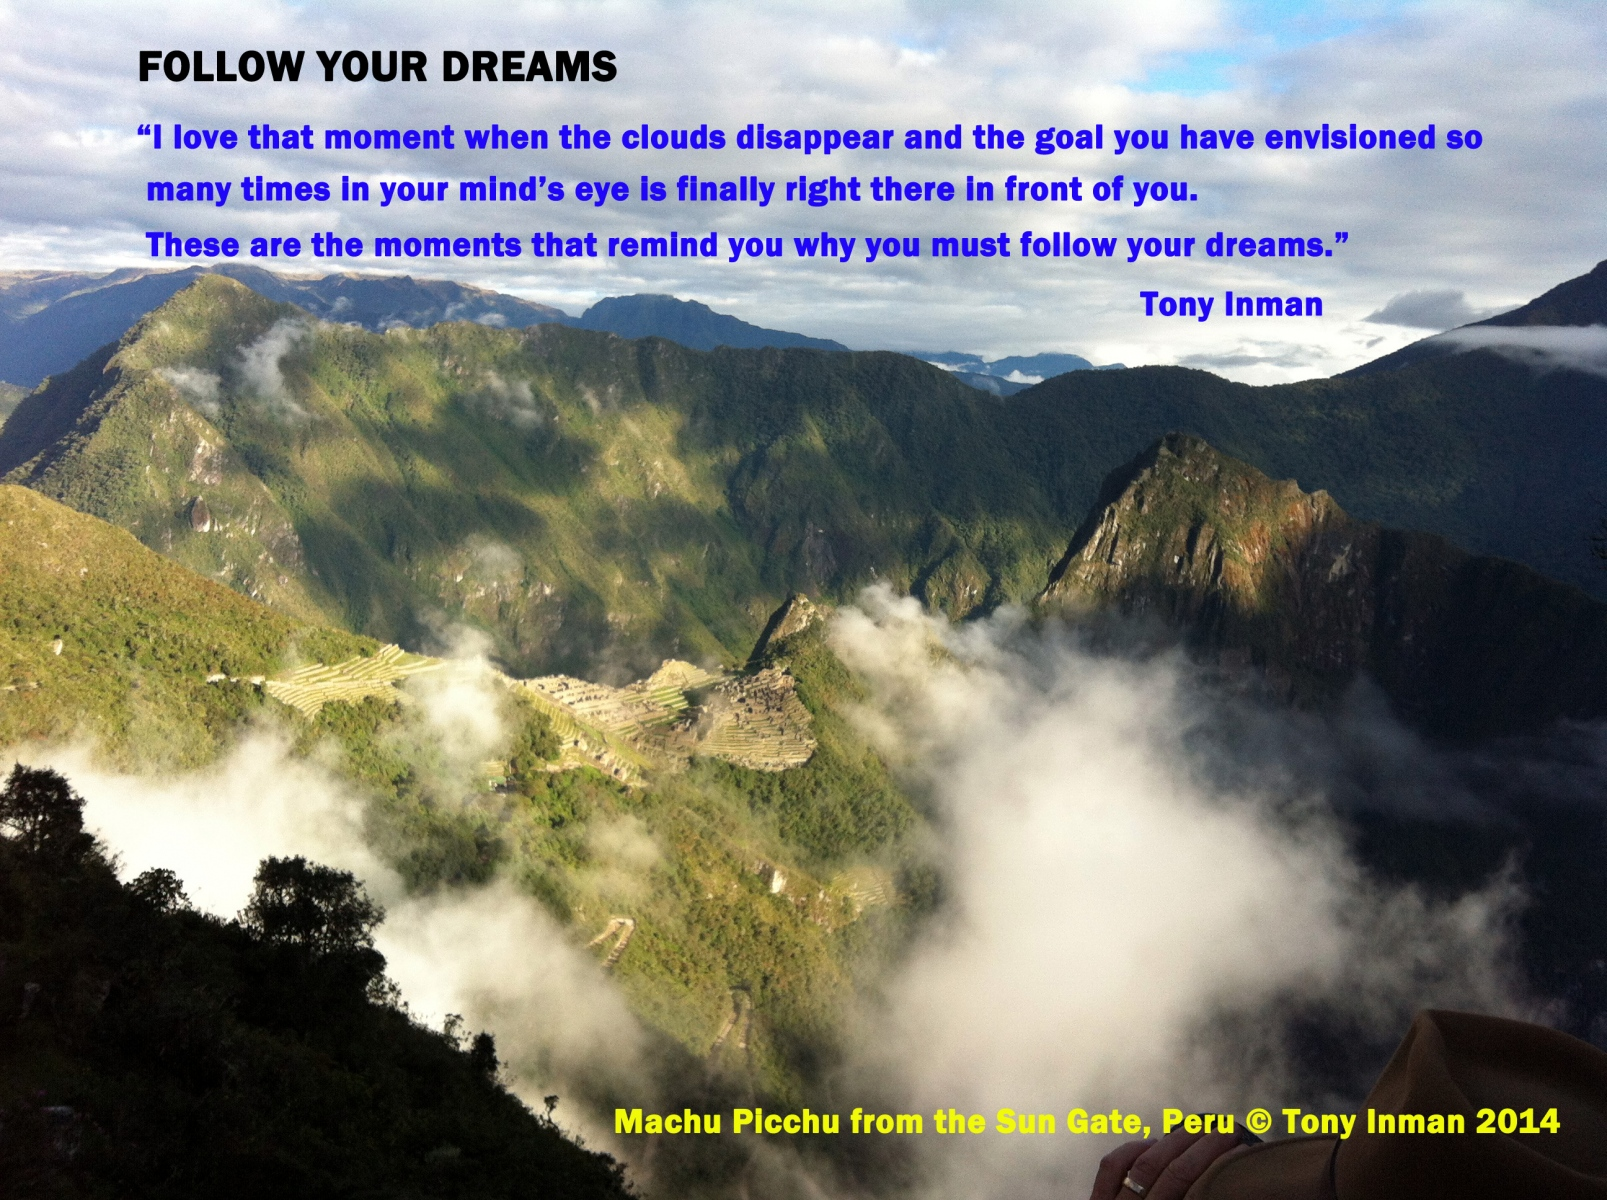 FOLLOW-YOUR-DREAMS-MachuPicchu-2014